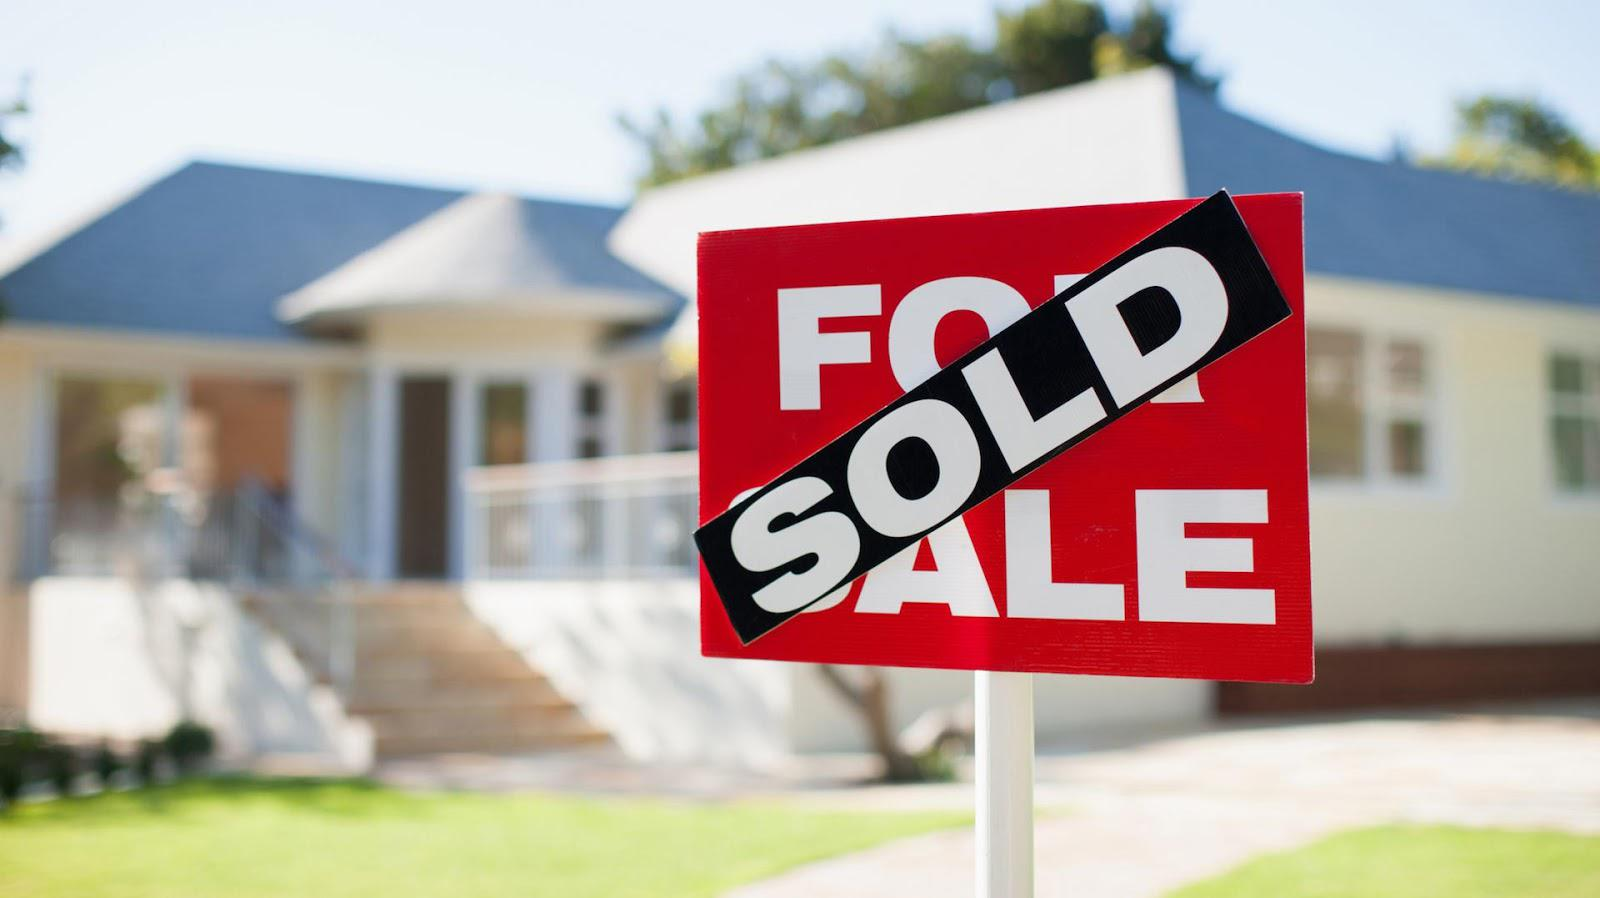 6 Crazy Tactics To Sell Your House Fast